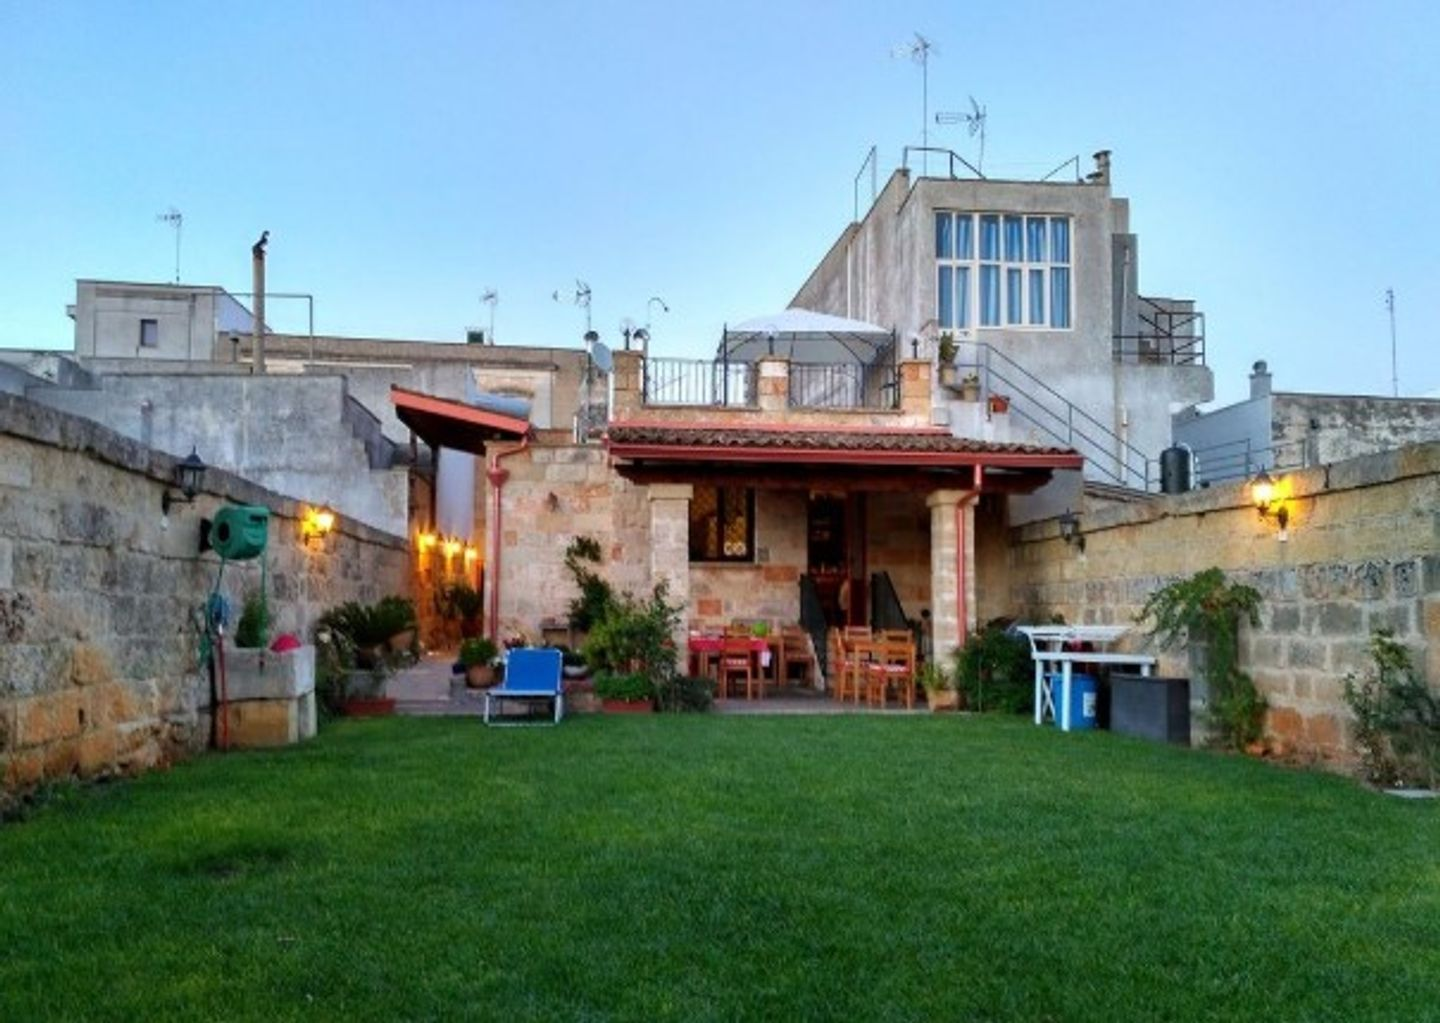 A large brick building with green grass at B&B Incanto.